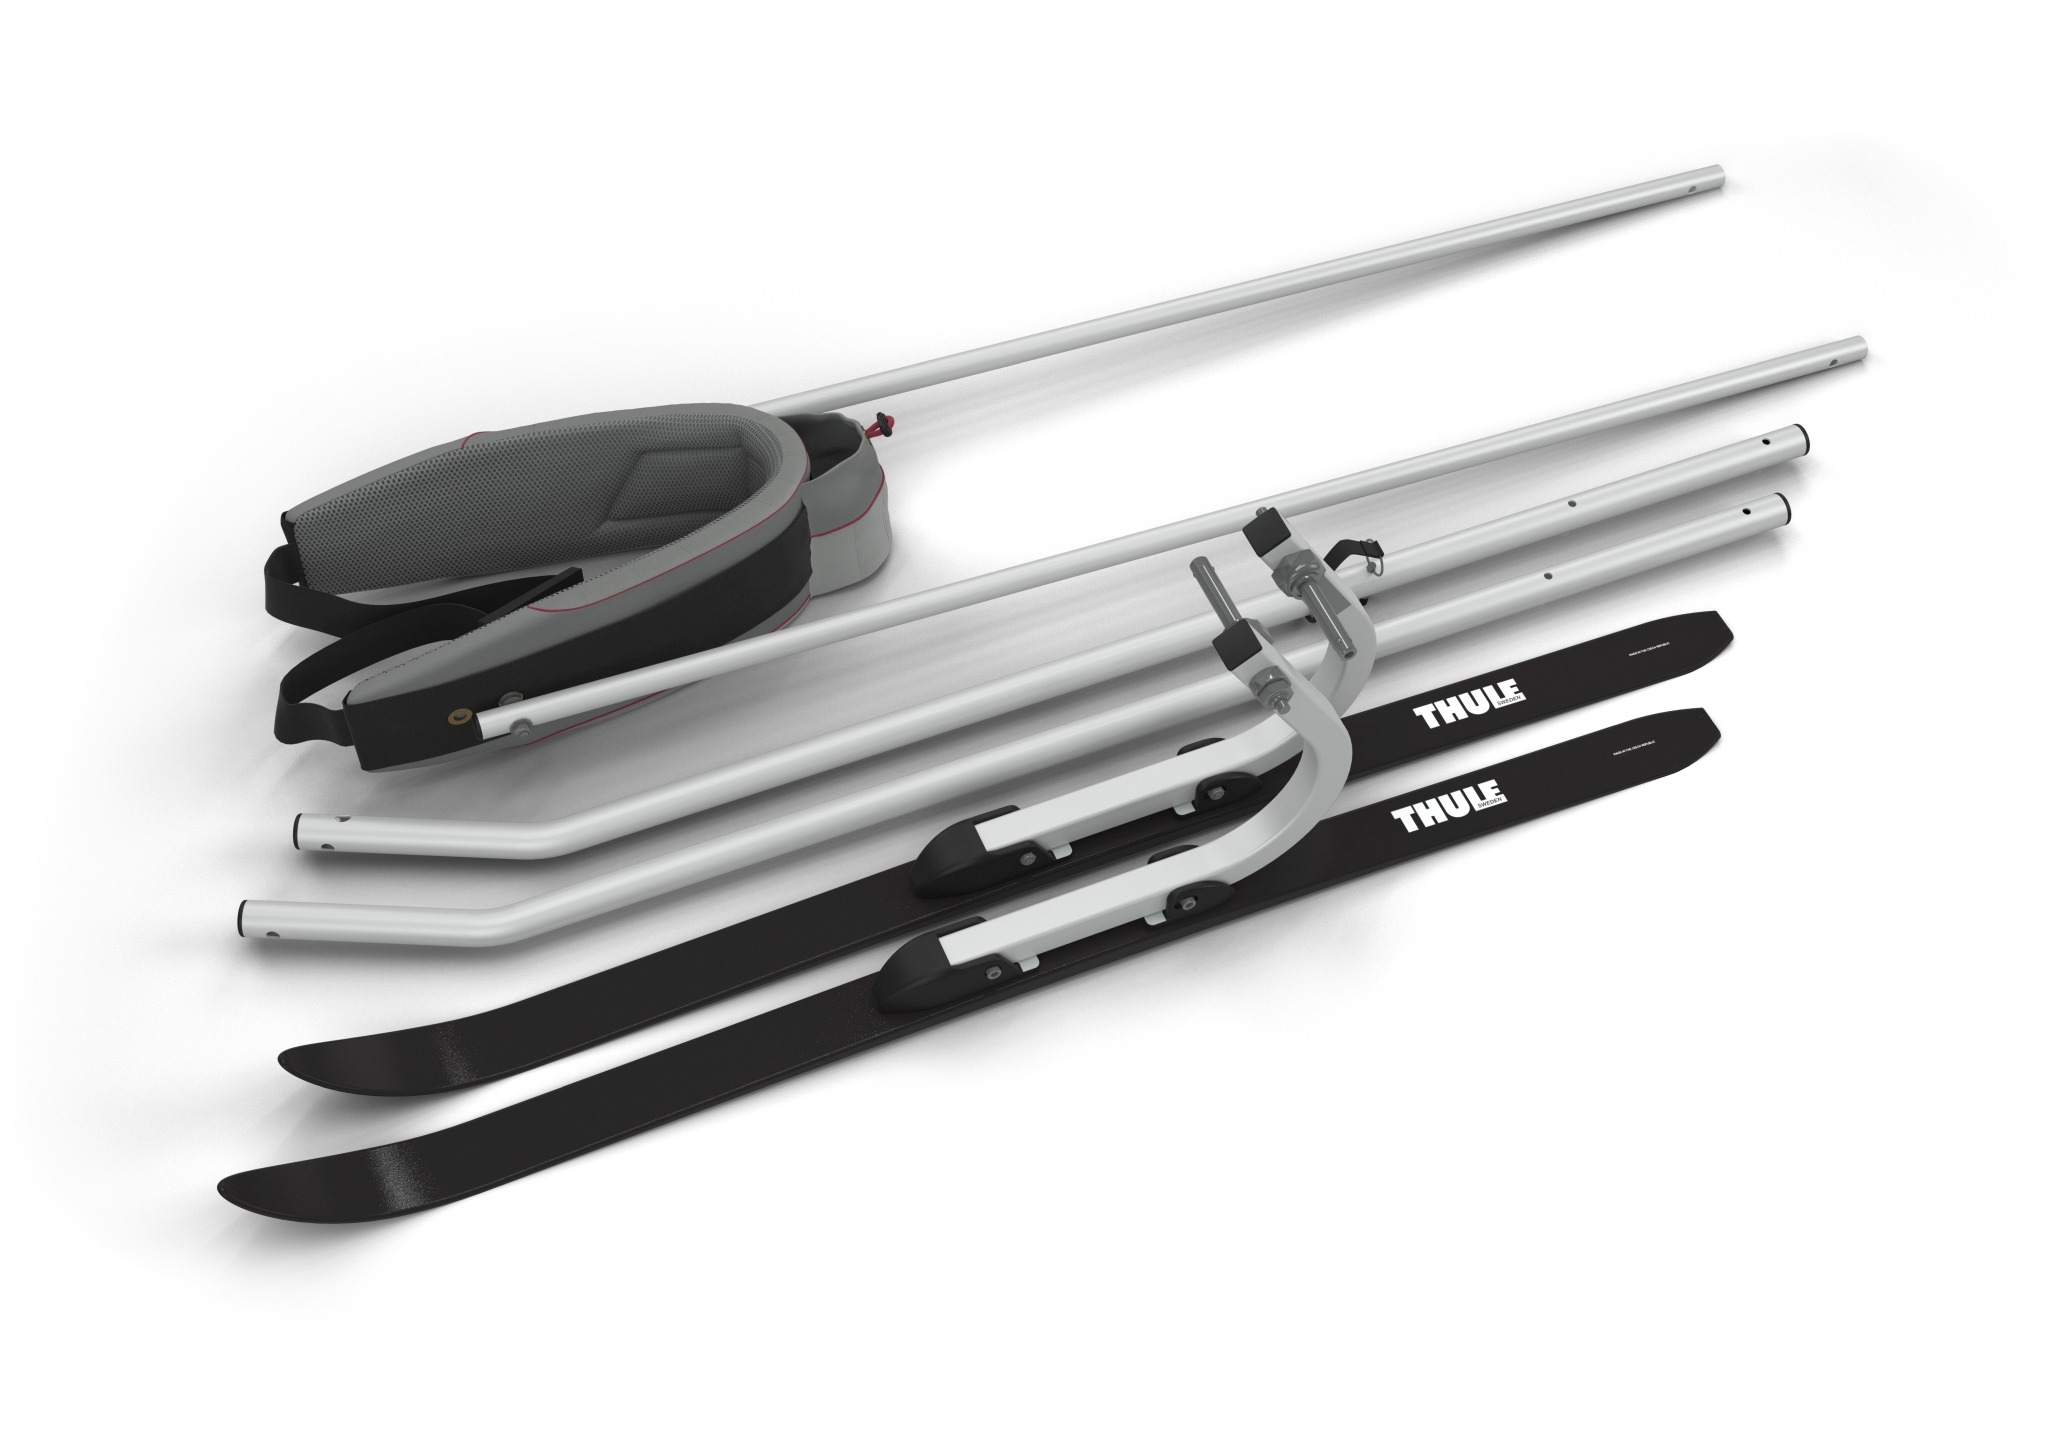 Thule Chariot - Cross Country Skiing and Hiking Kit